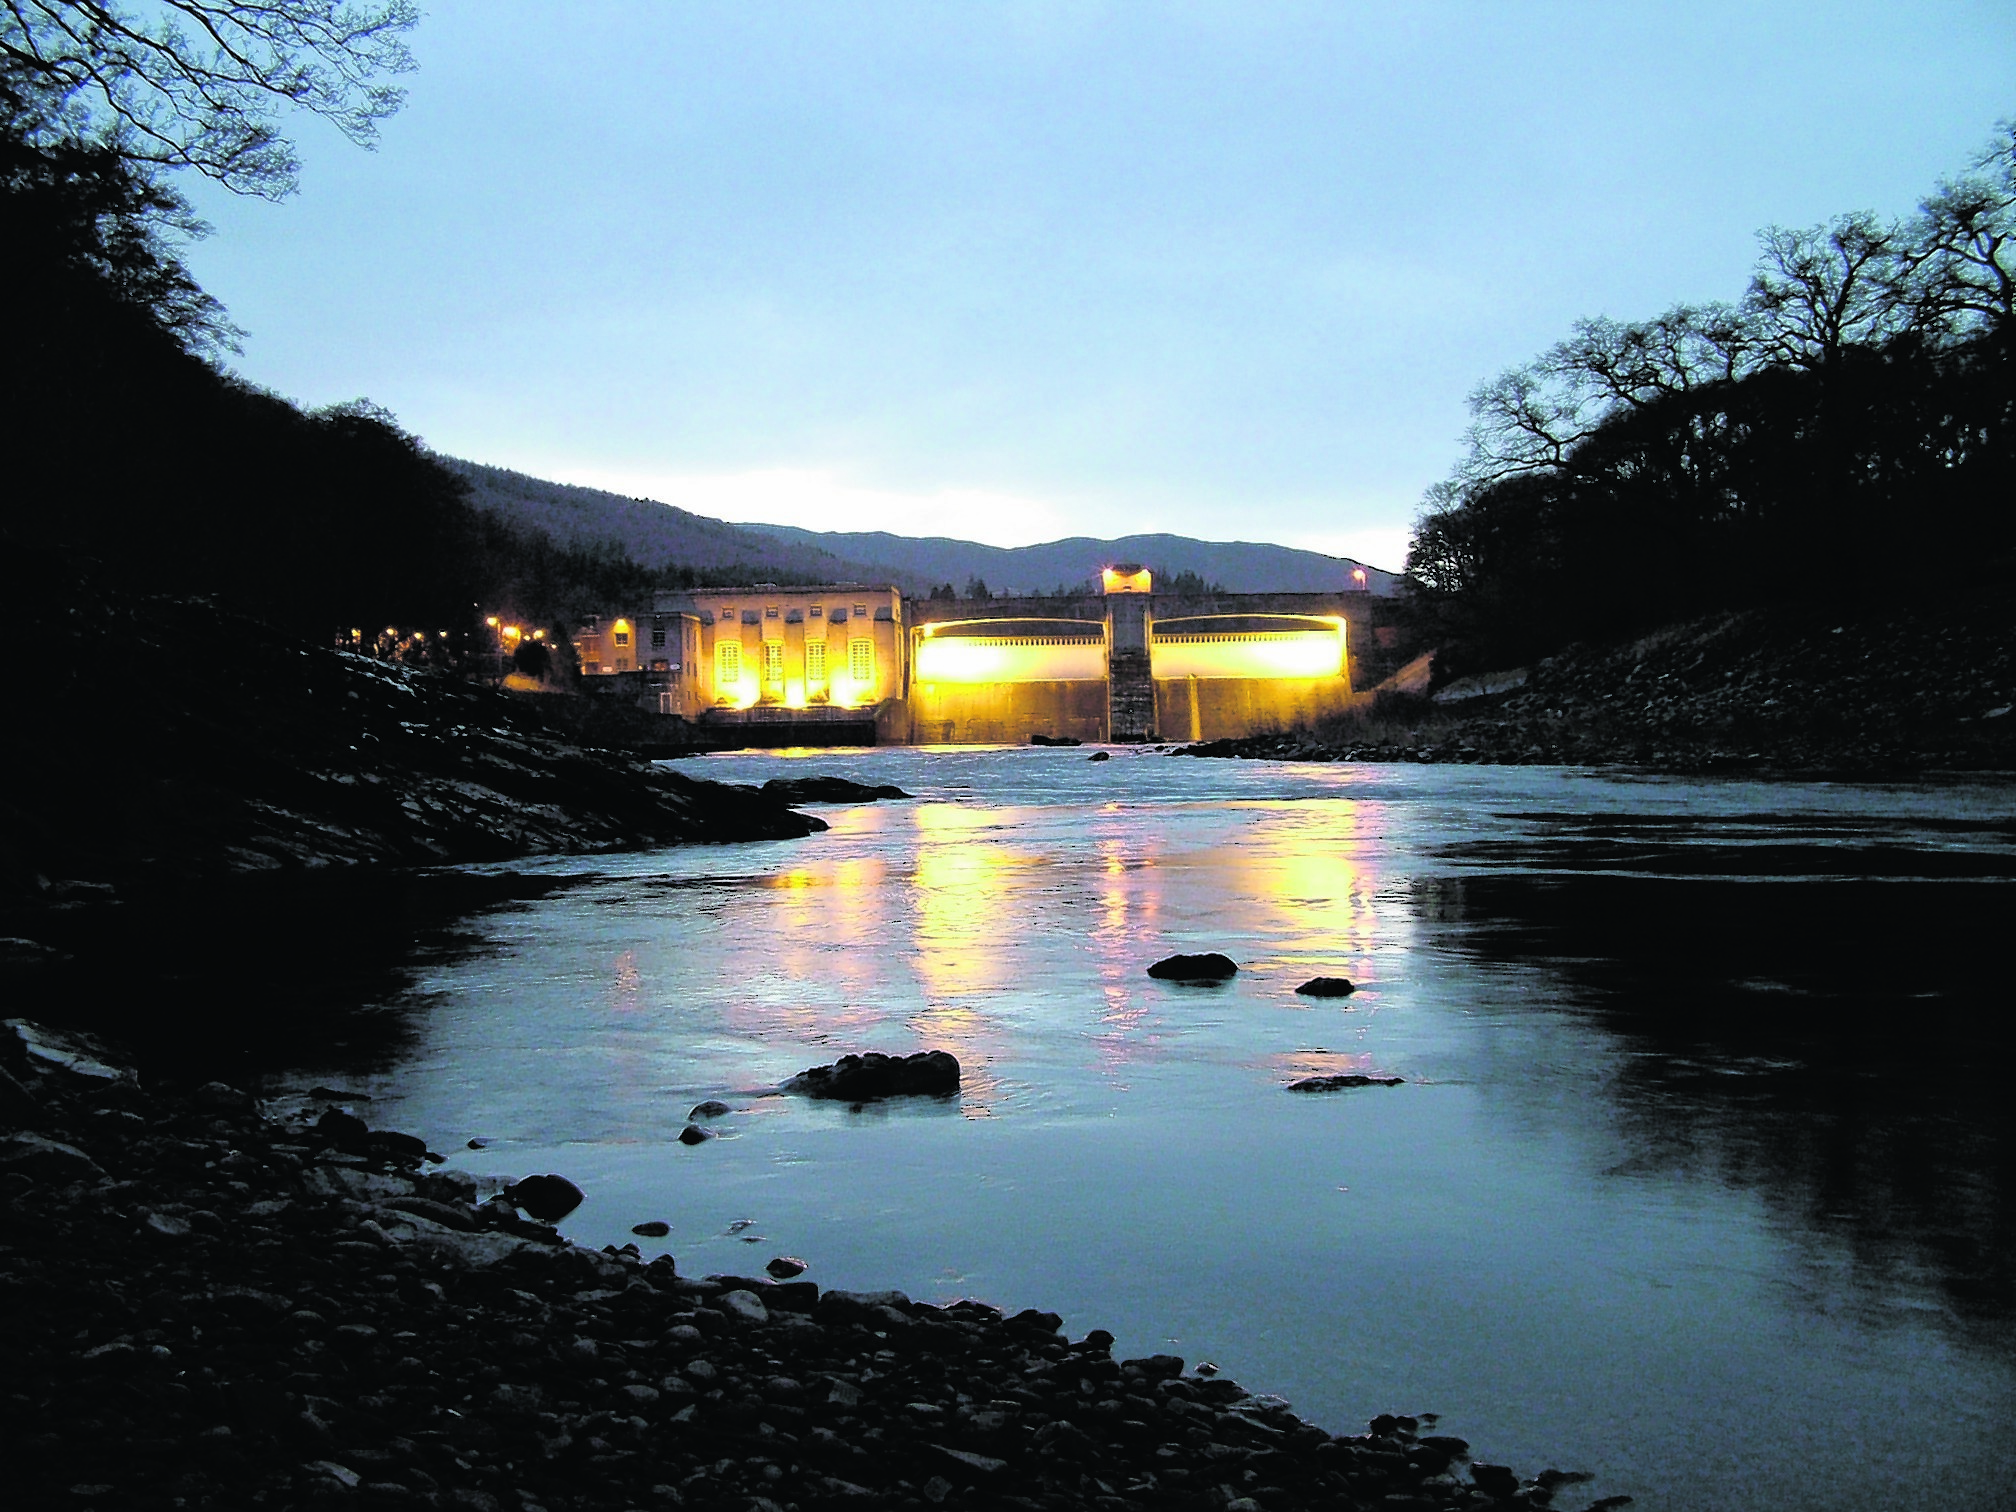 Pitlochry Dam attracts  500,000 visitors each year